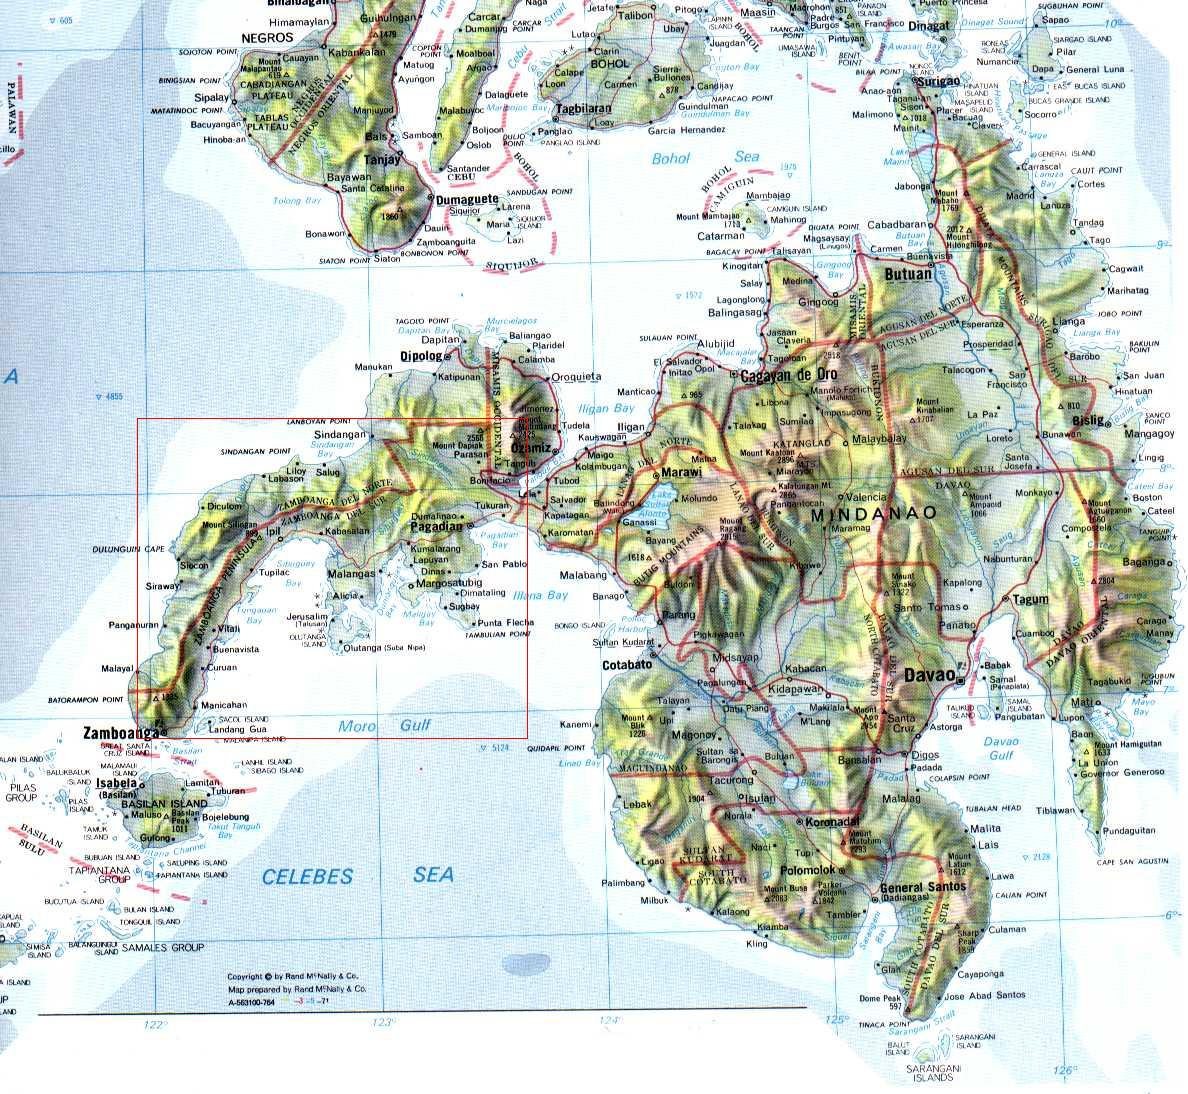 Forget Myanmar, Mindanao is the final frontier